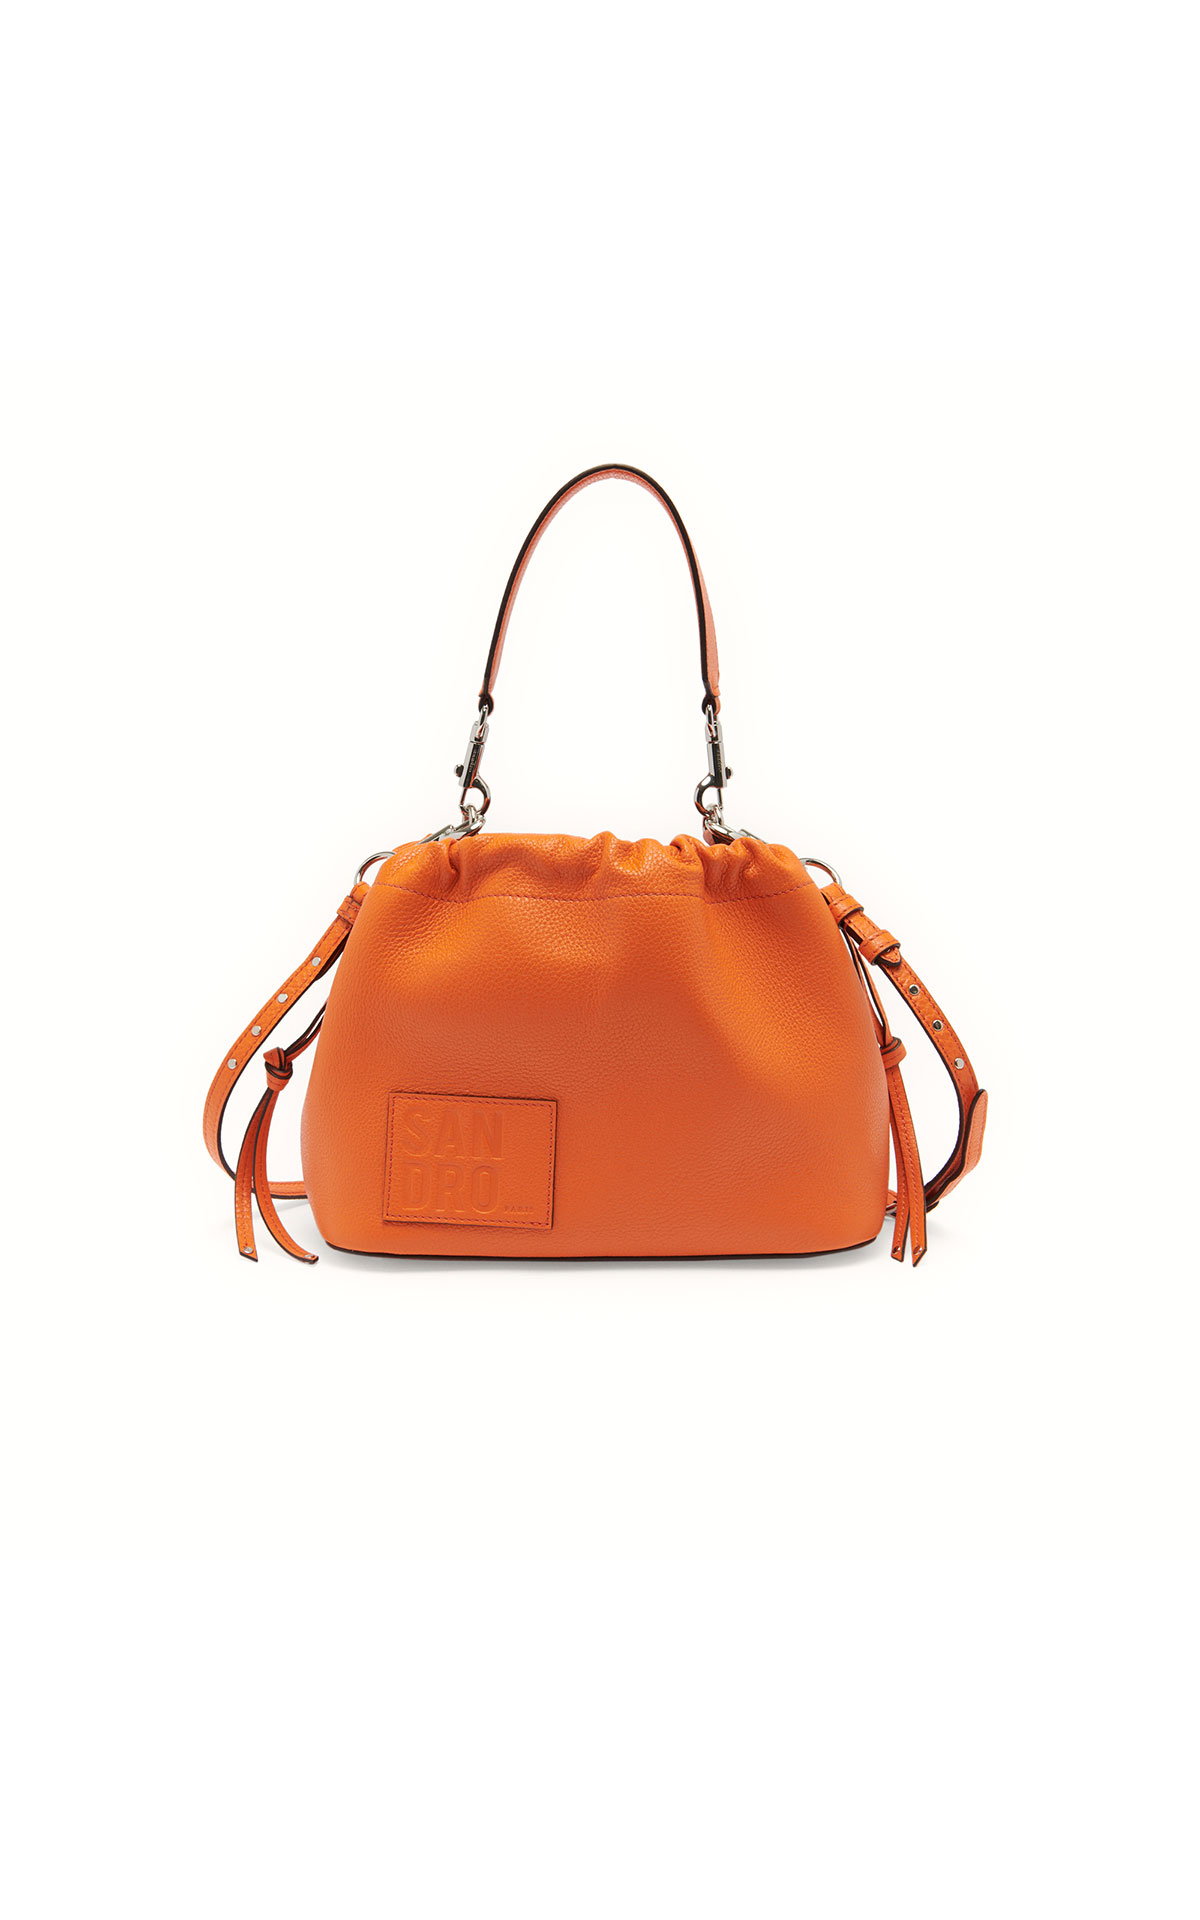 Sandro grained leather bucket bag at The Bicester Village Shopping Collection